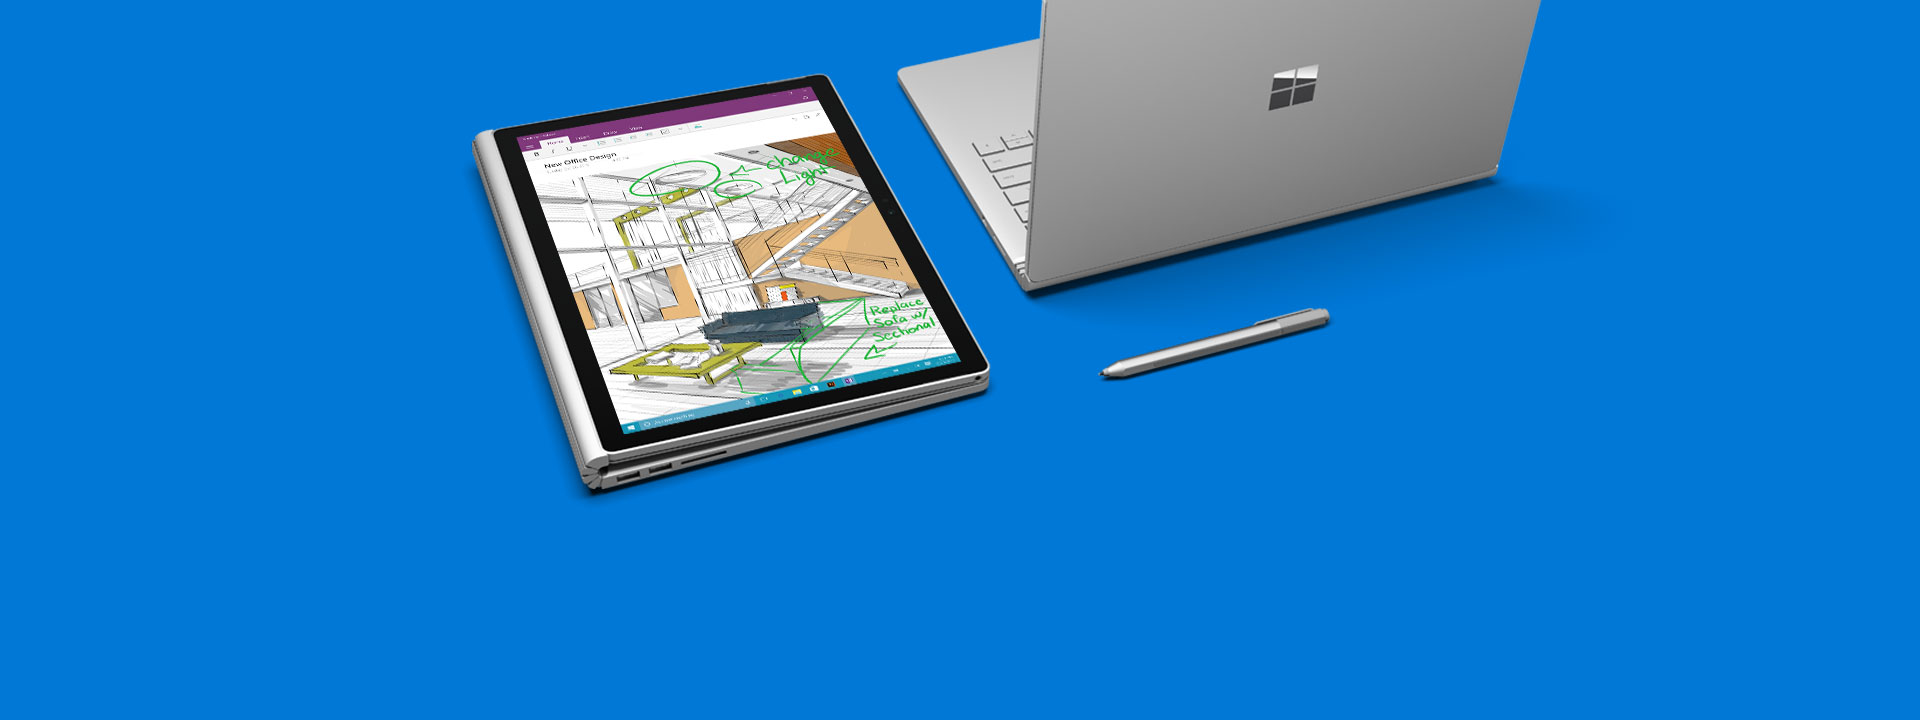 Surface Books, learn more